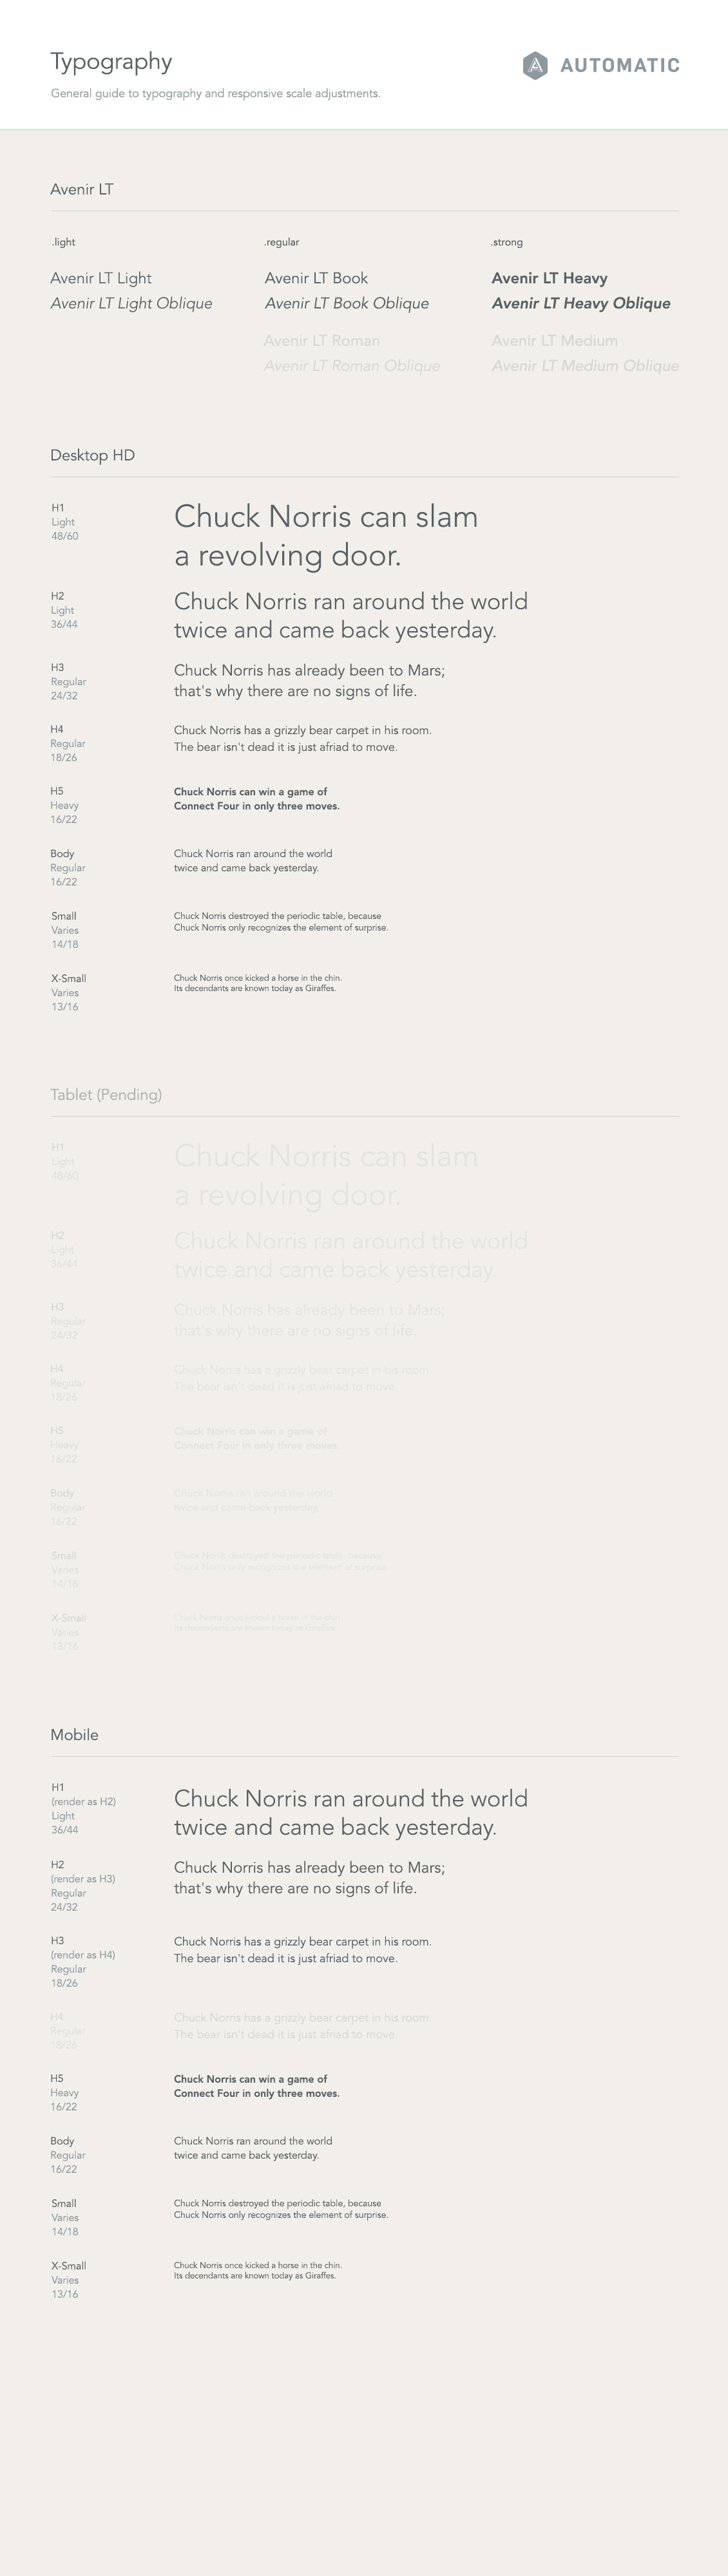 automatic-marketing-site-style-guide-styles-typography-spec.jpg